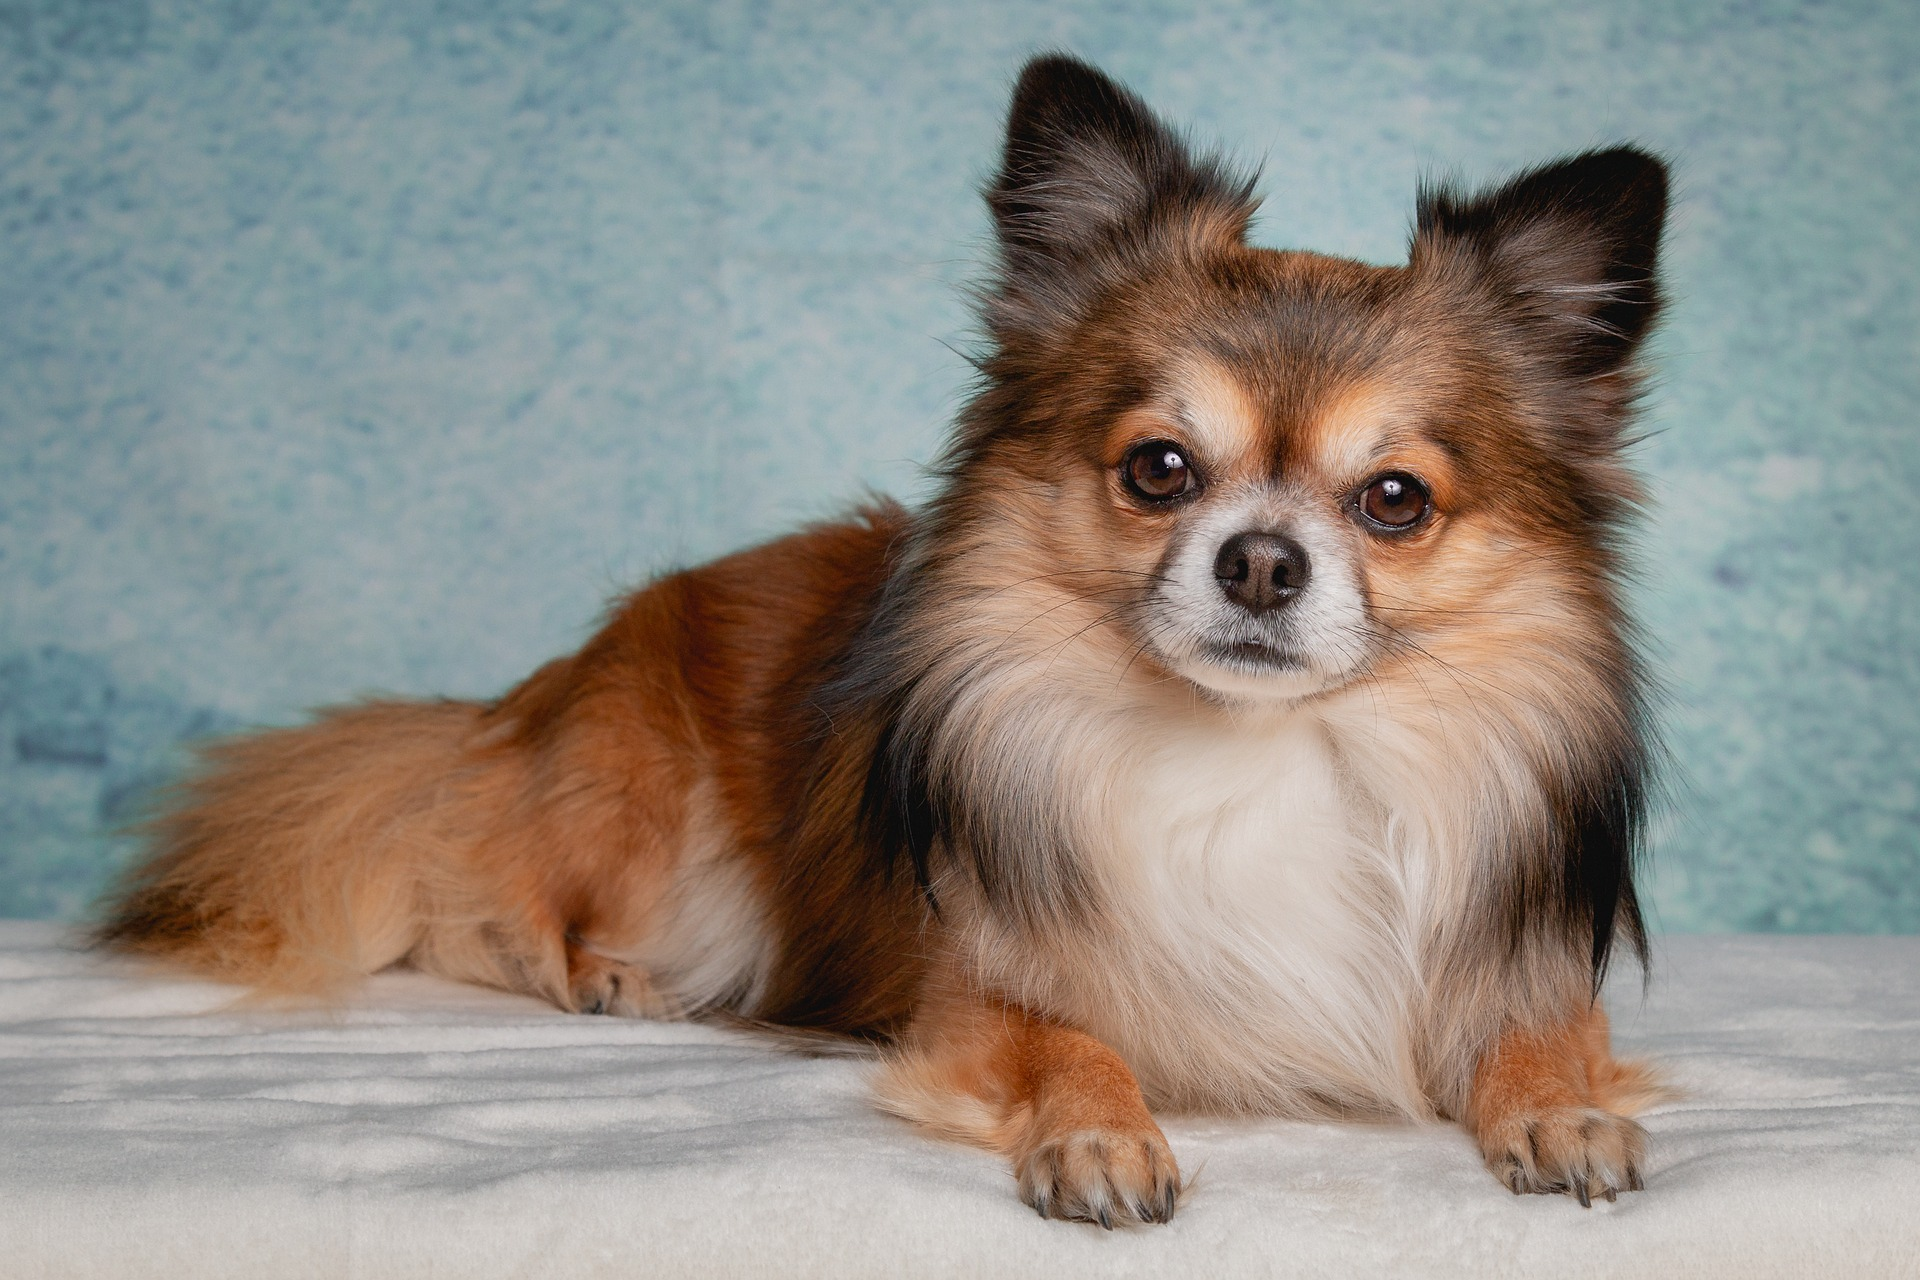 A fluffy healthy long haired Chihuahua dog.